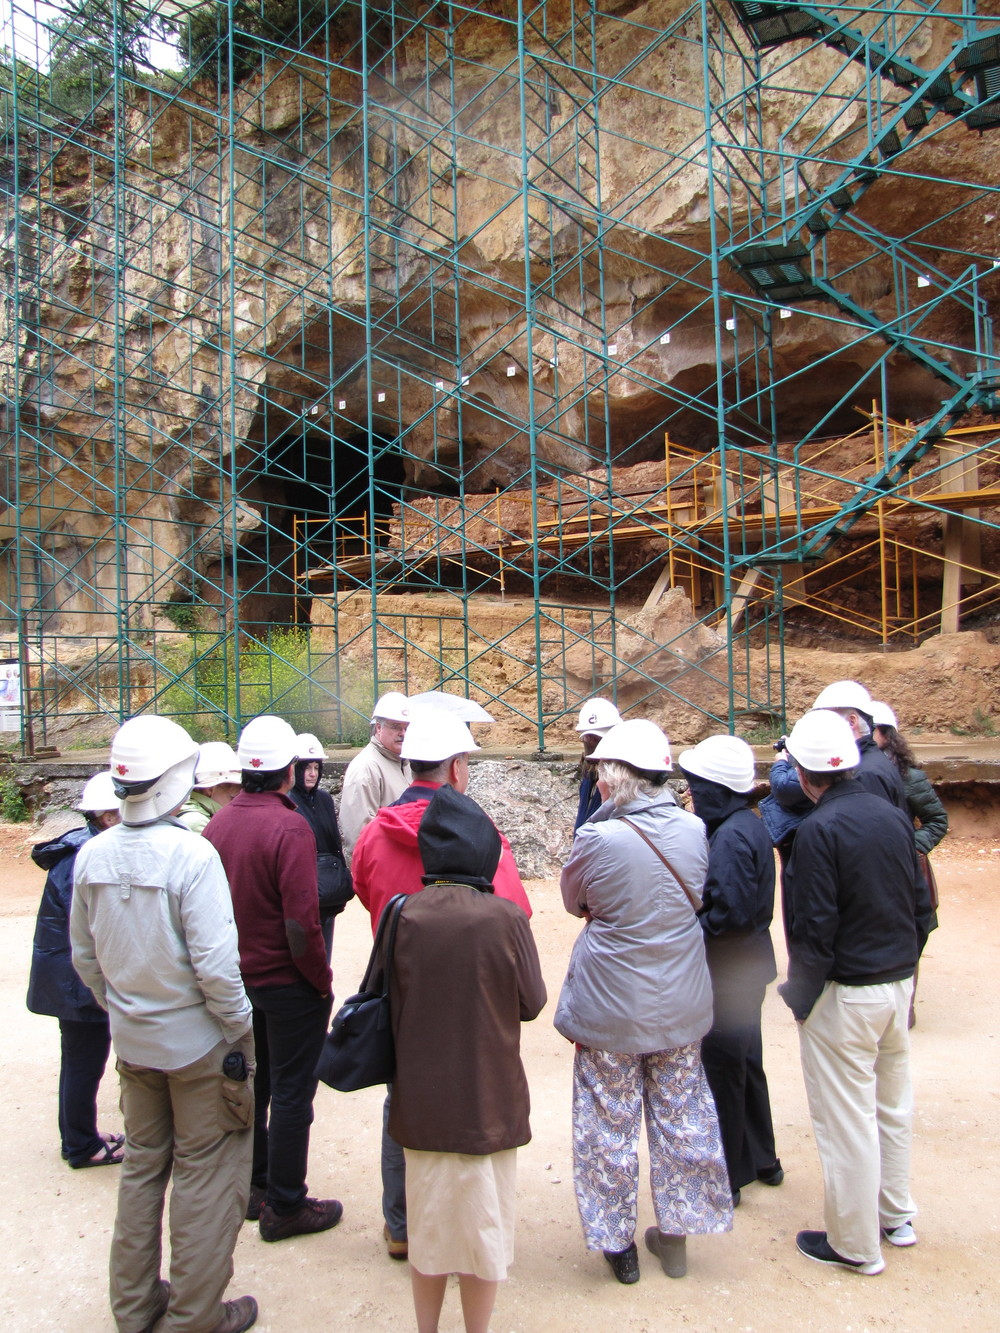 The scaffolding we were allowed to climb at Atapuerca.